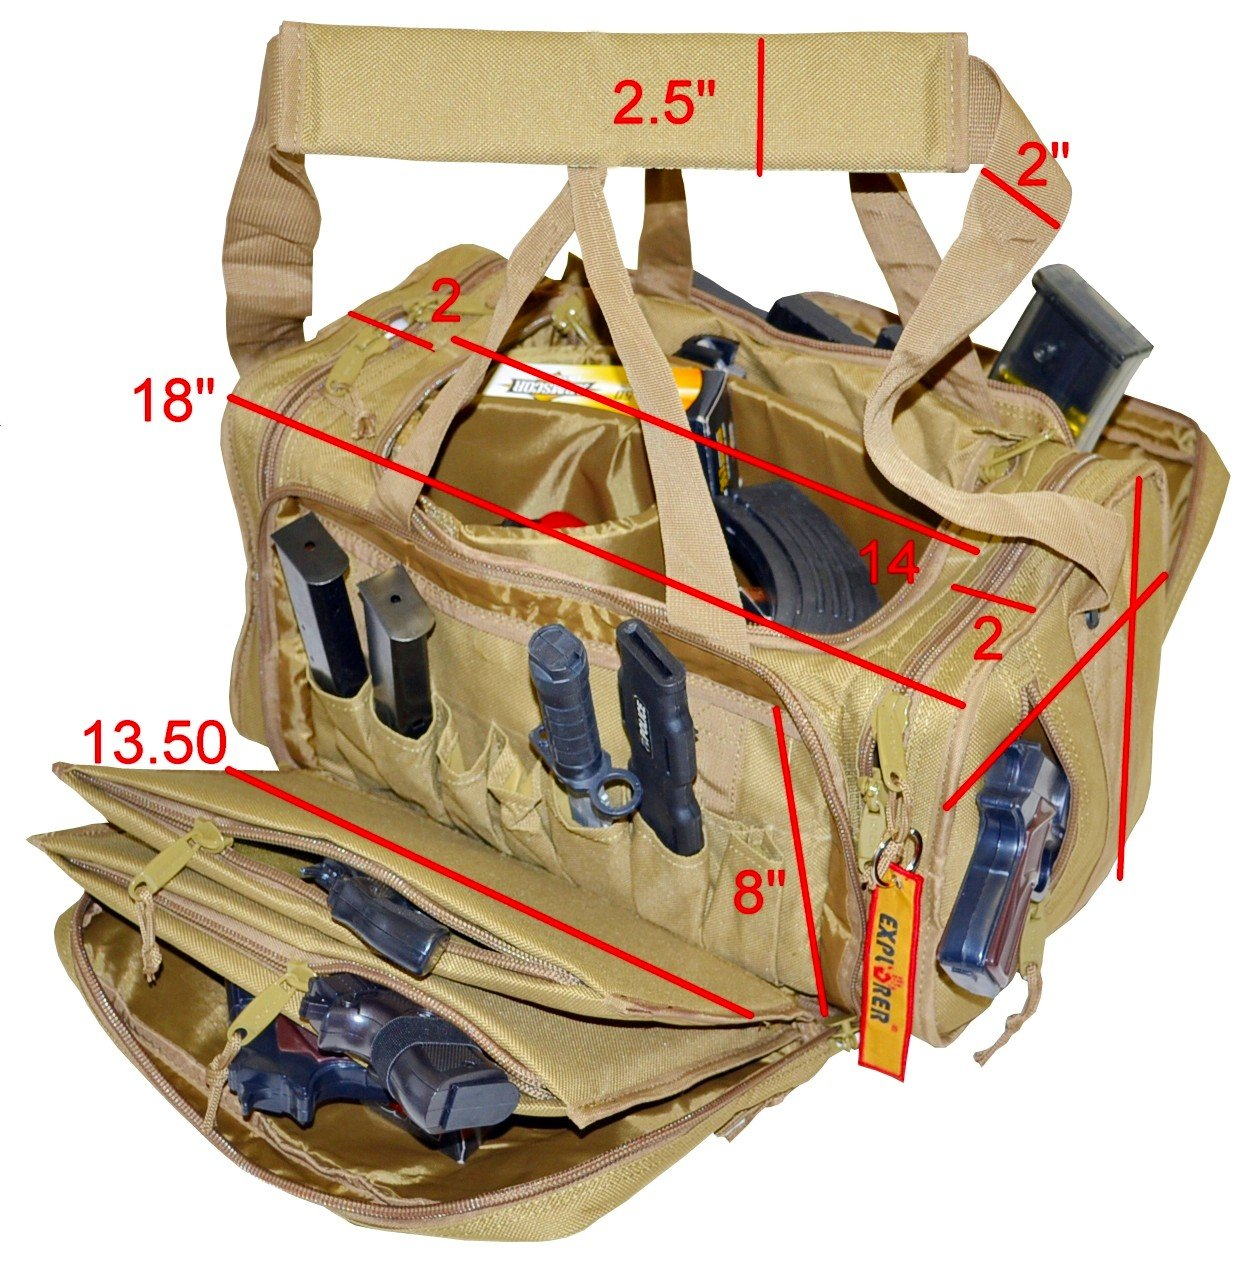 5. EXPLORER Tactical Range Ready Bag 18-Inch